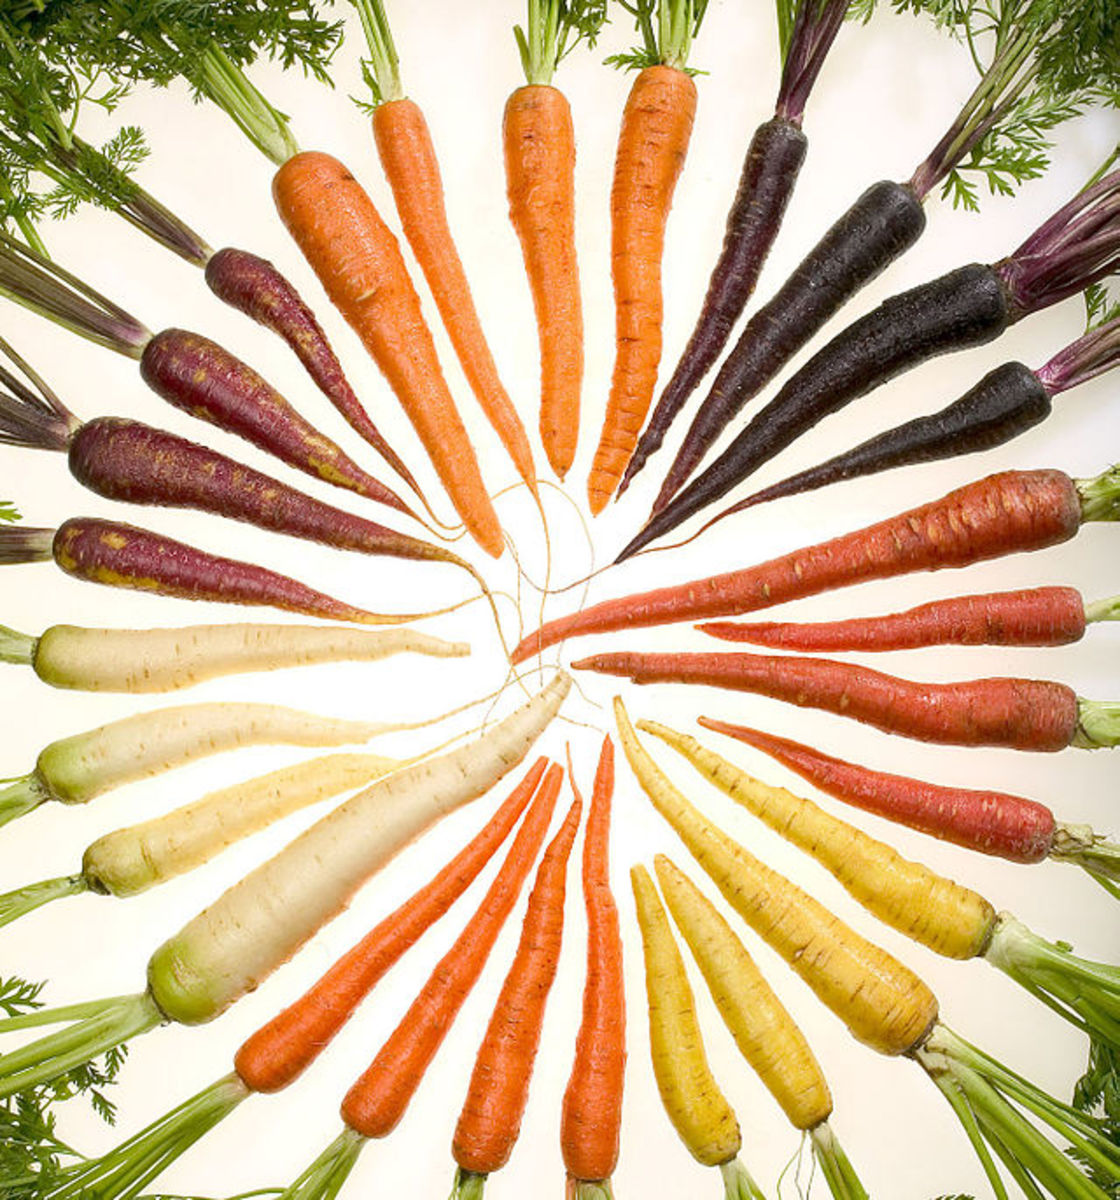 Carrots are available in many colours.